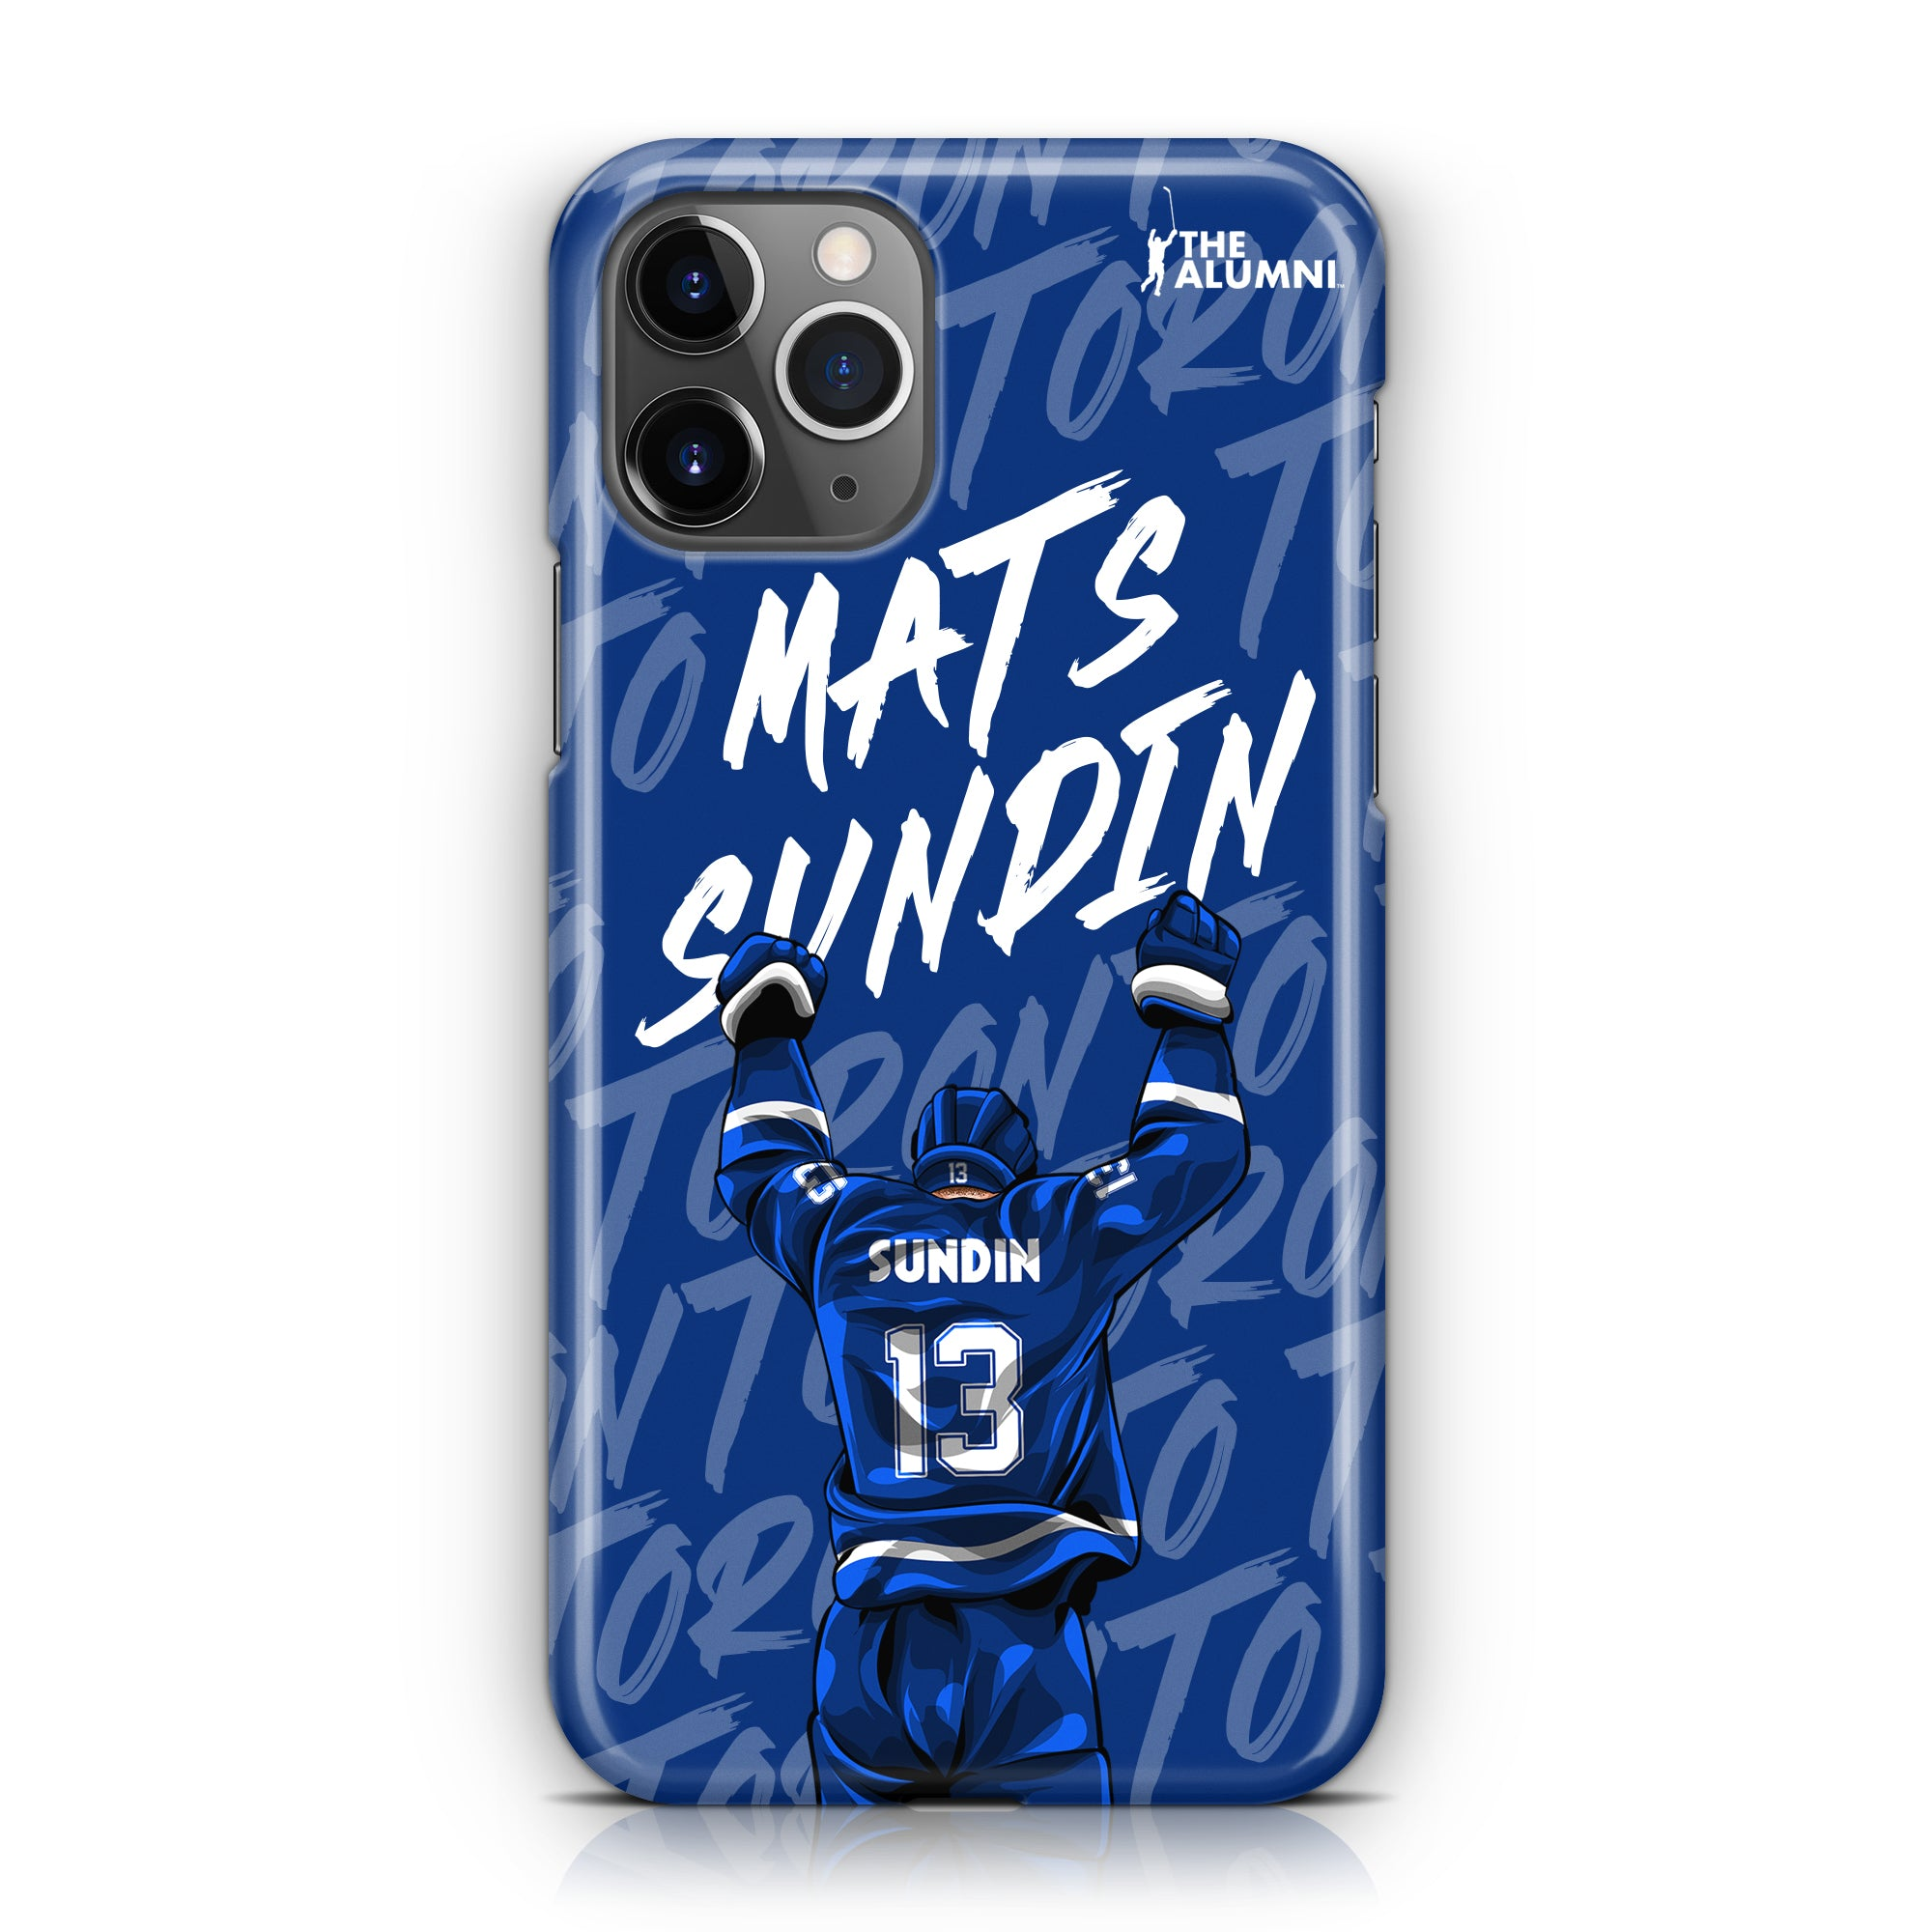 Sundin Legend Series 2.0 Case